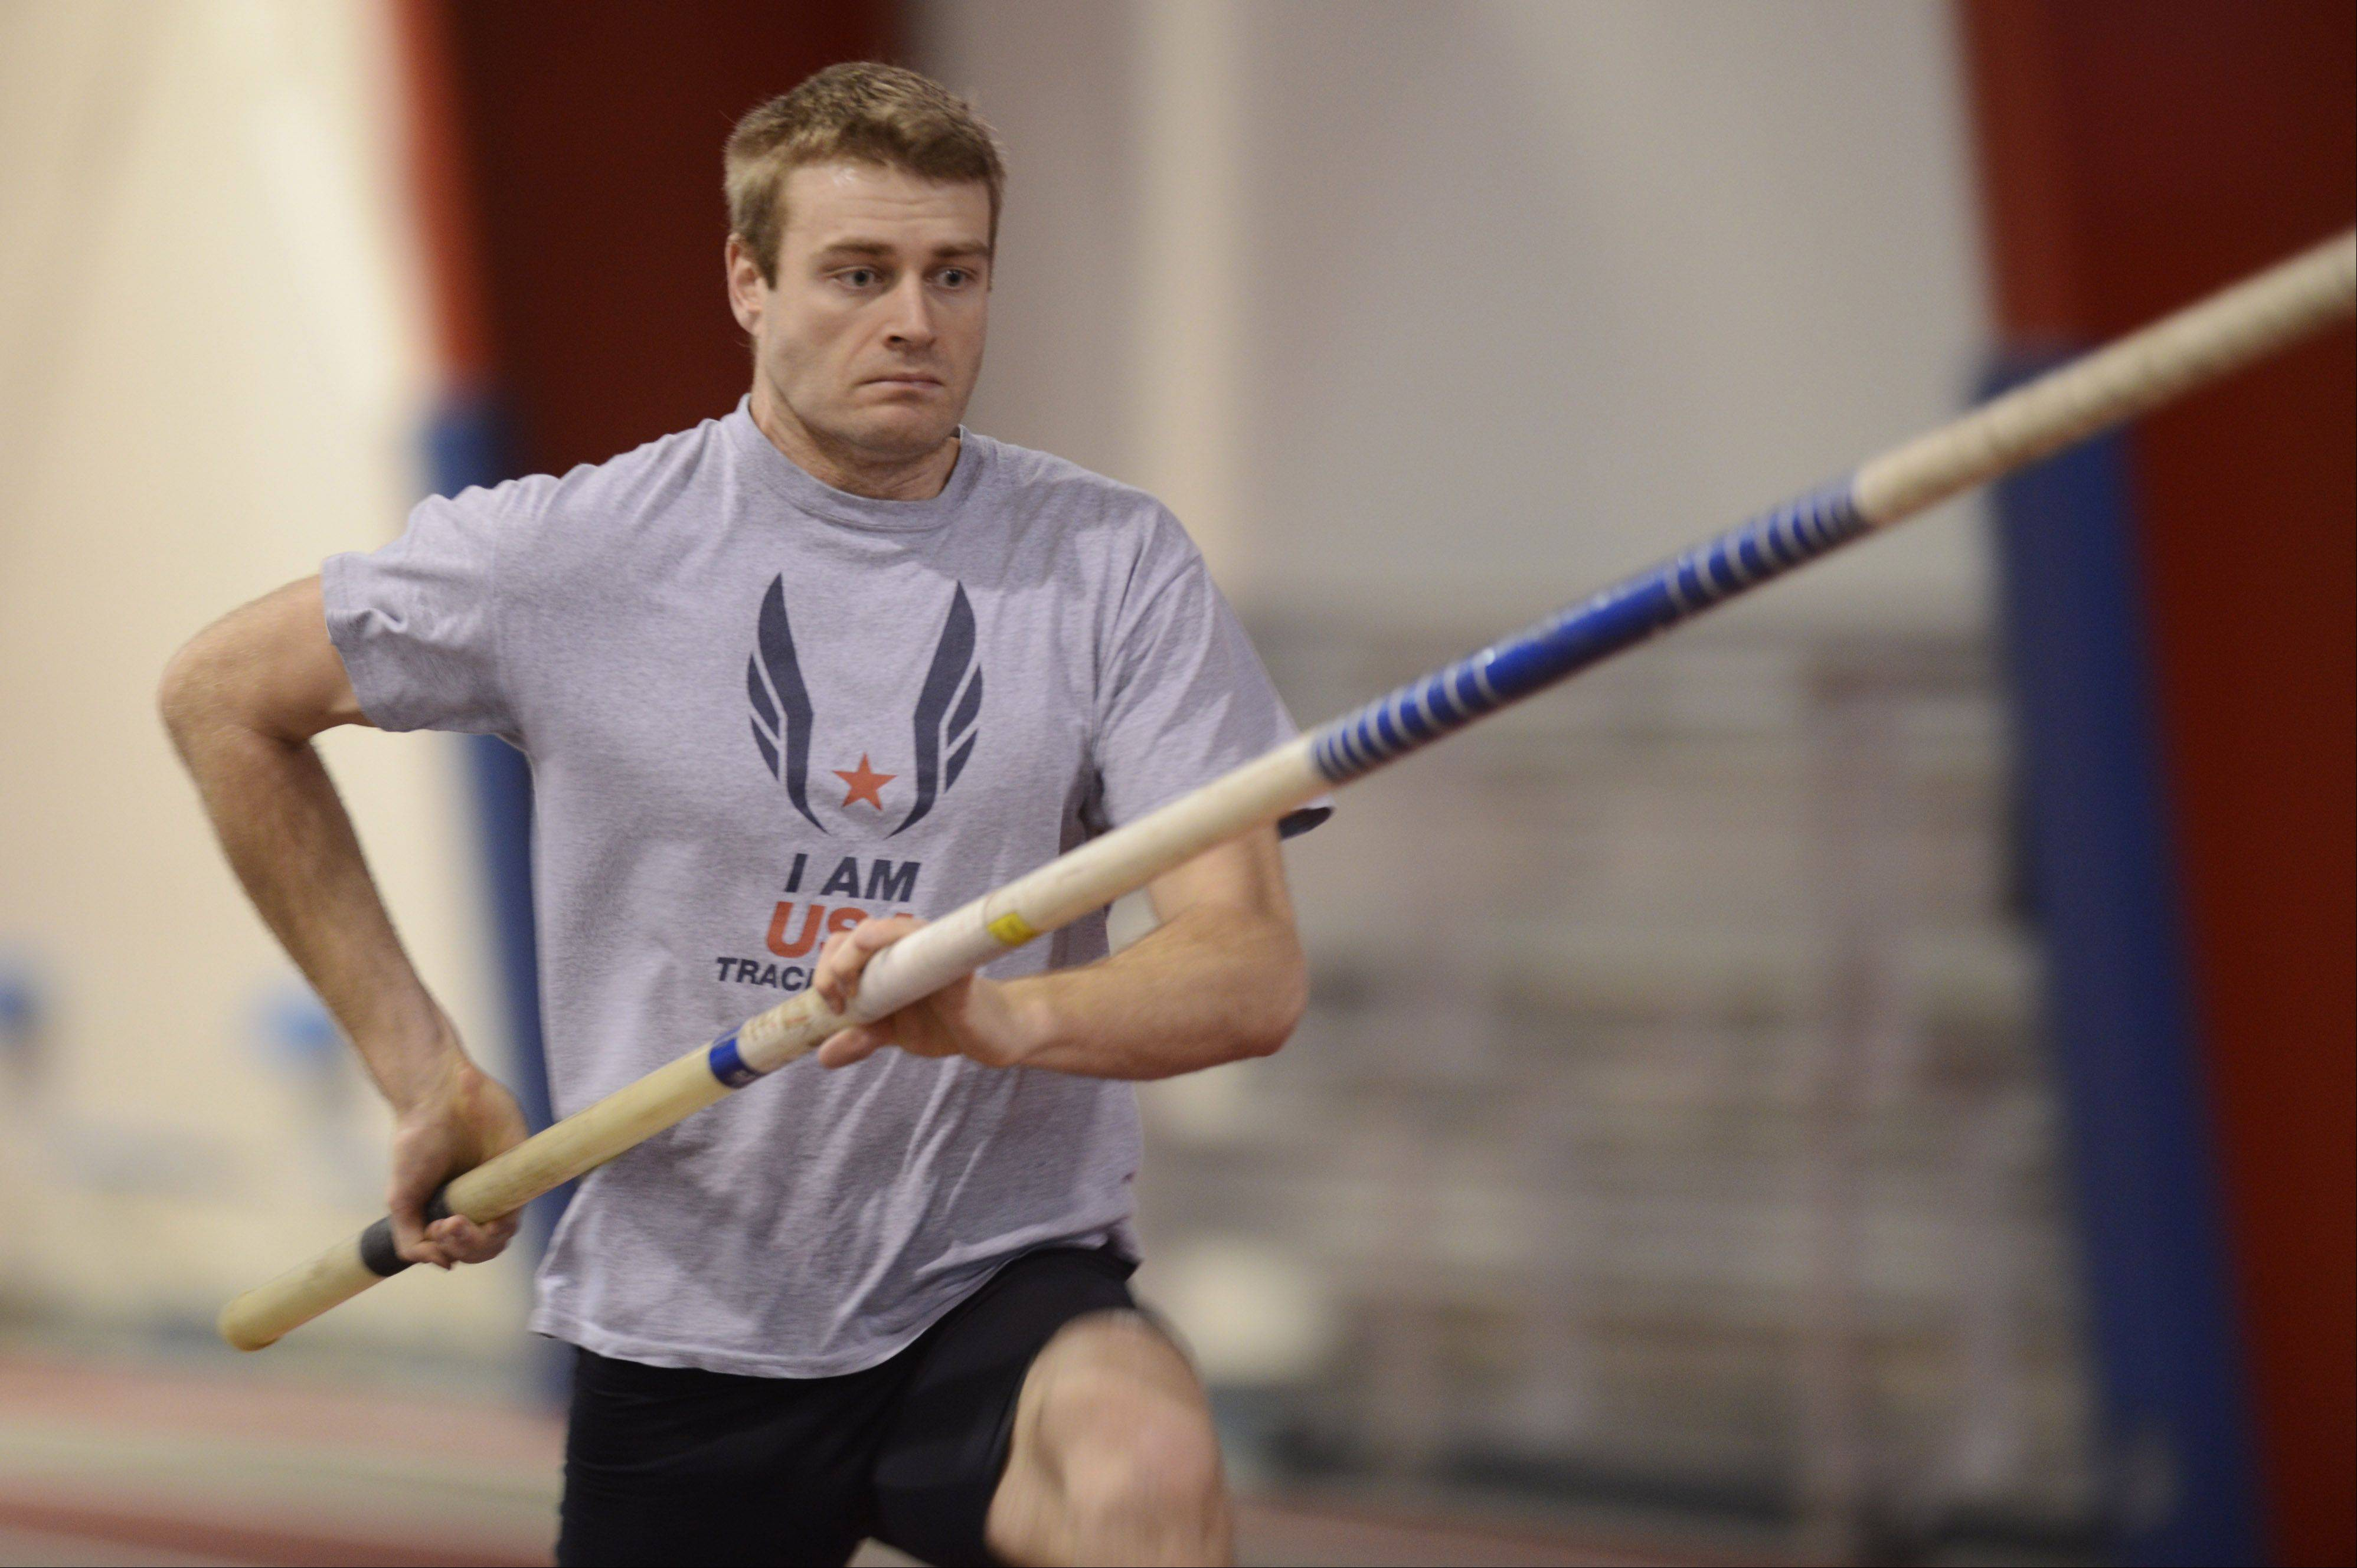 Pole vaulter Darren Niedermeyer works out at the Lewis University Field House.